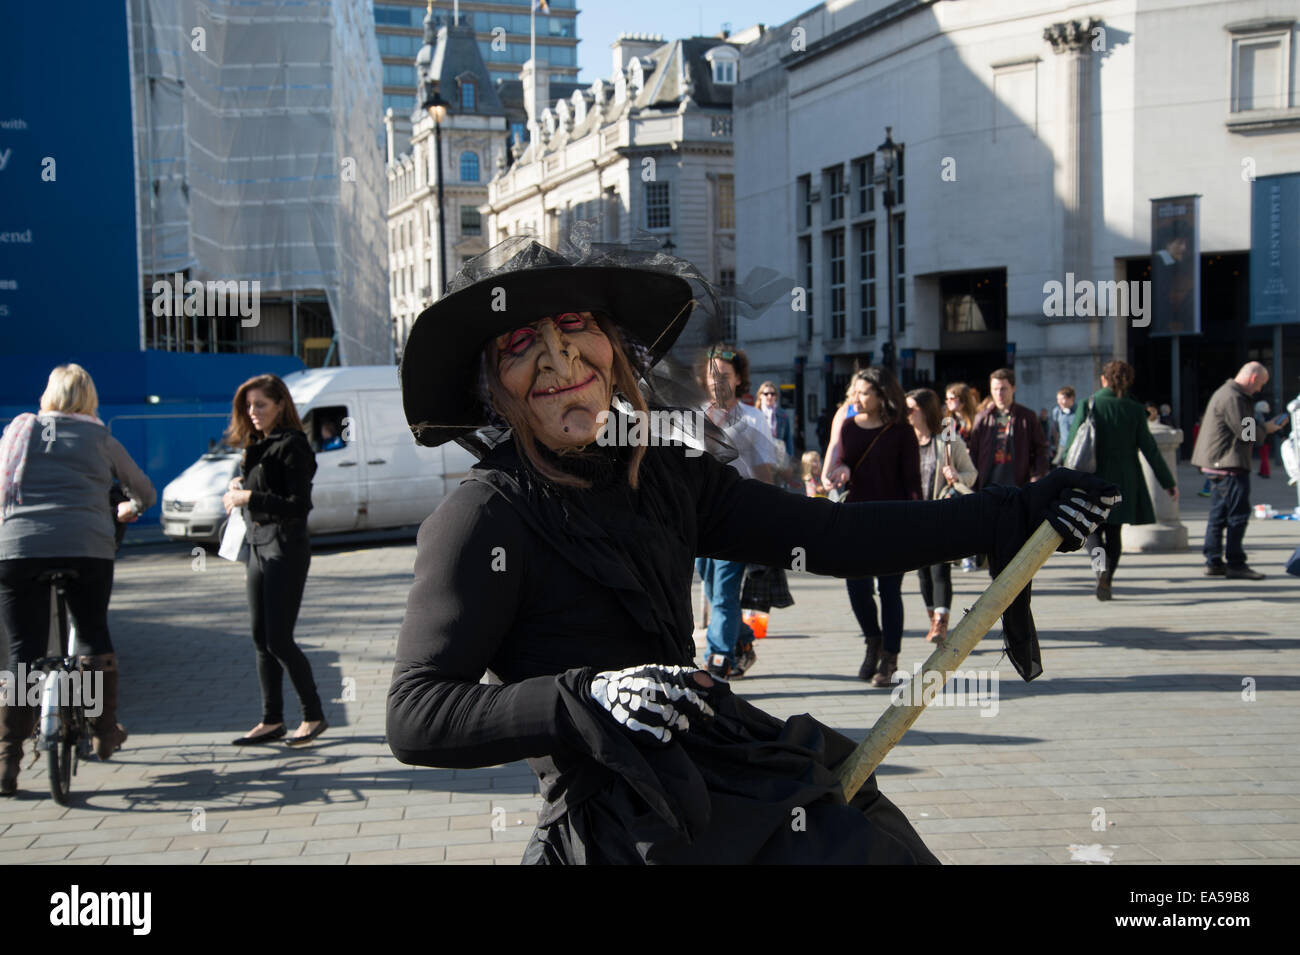 Trafalgar square. A mime artist dressed as a witch appears to be riding a broomstick - Stock Image